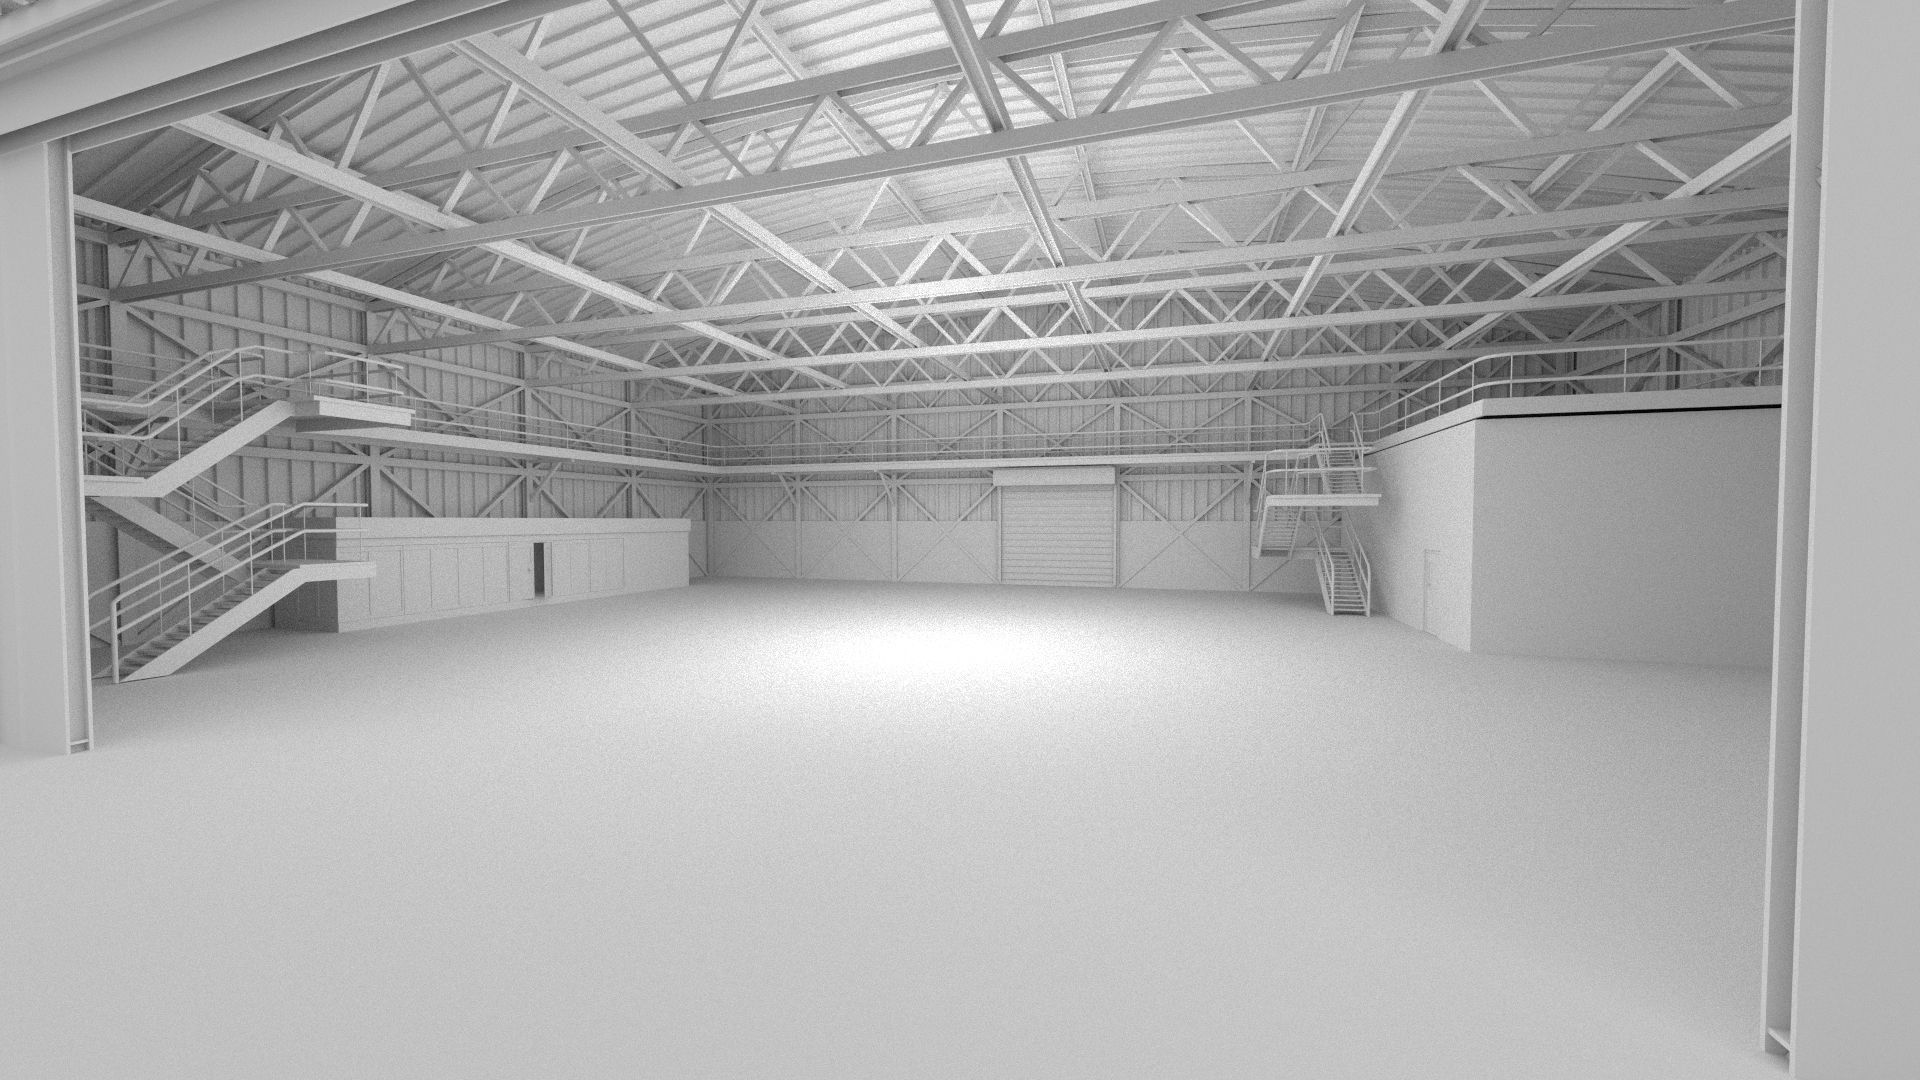 Hangar Scene Free 3d Model Game Ready Obj Fbx Blend